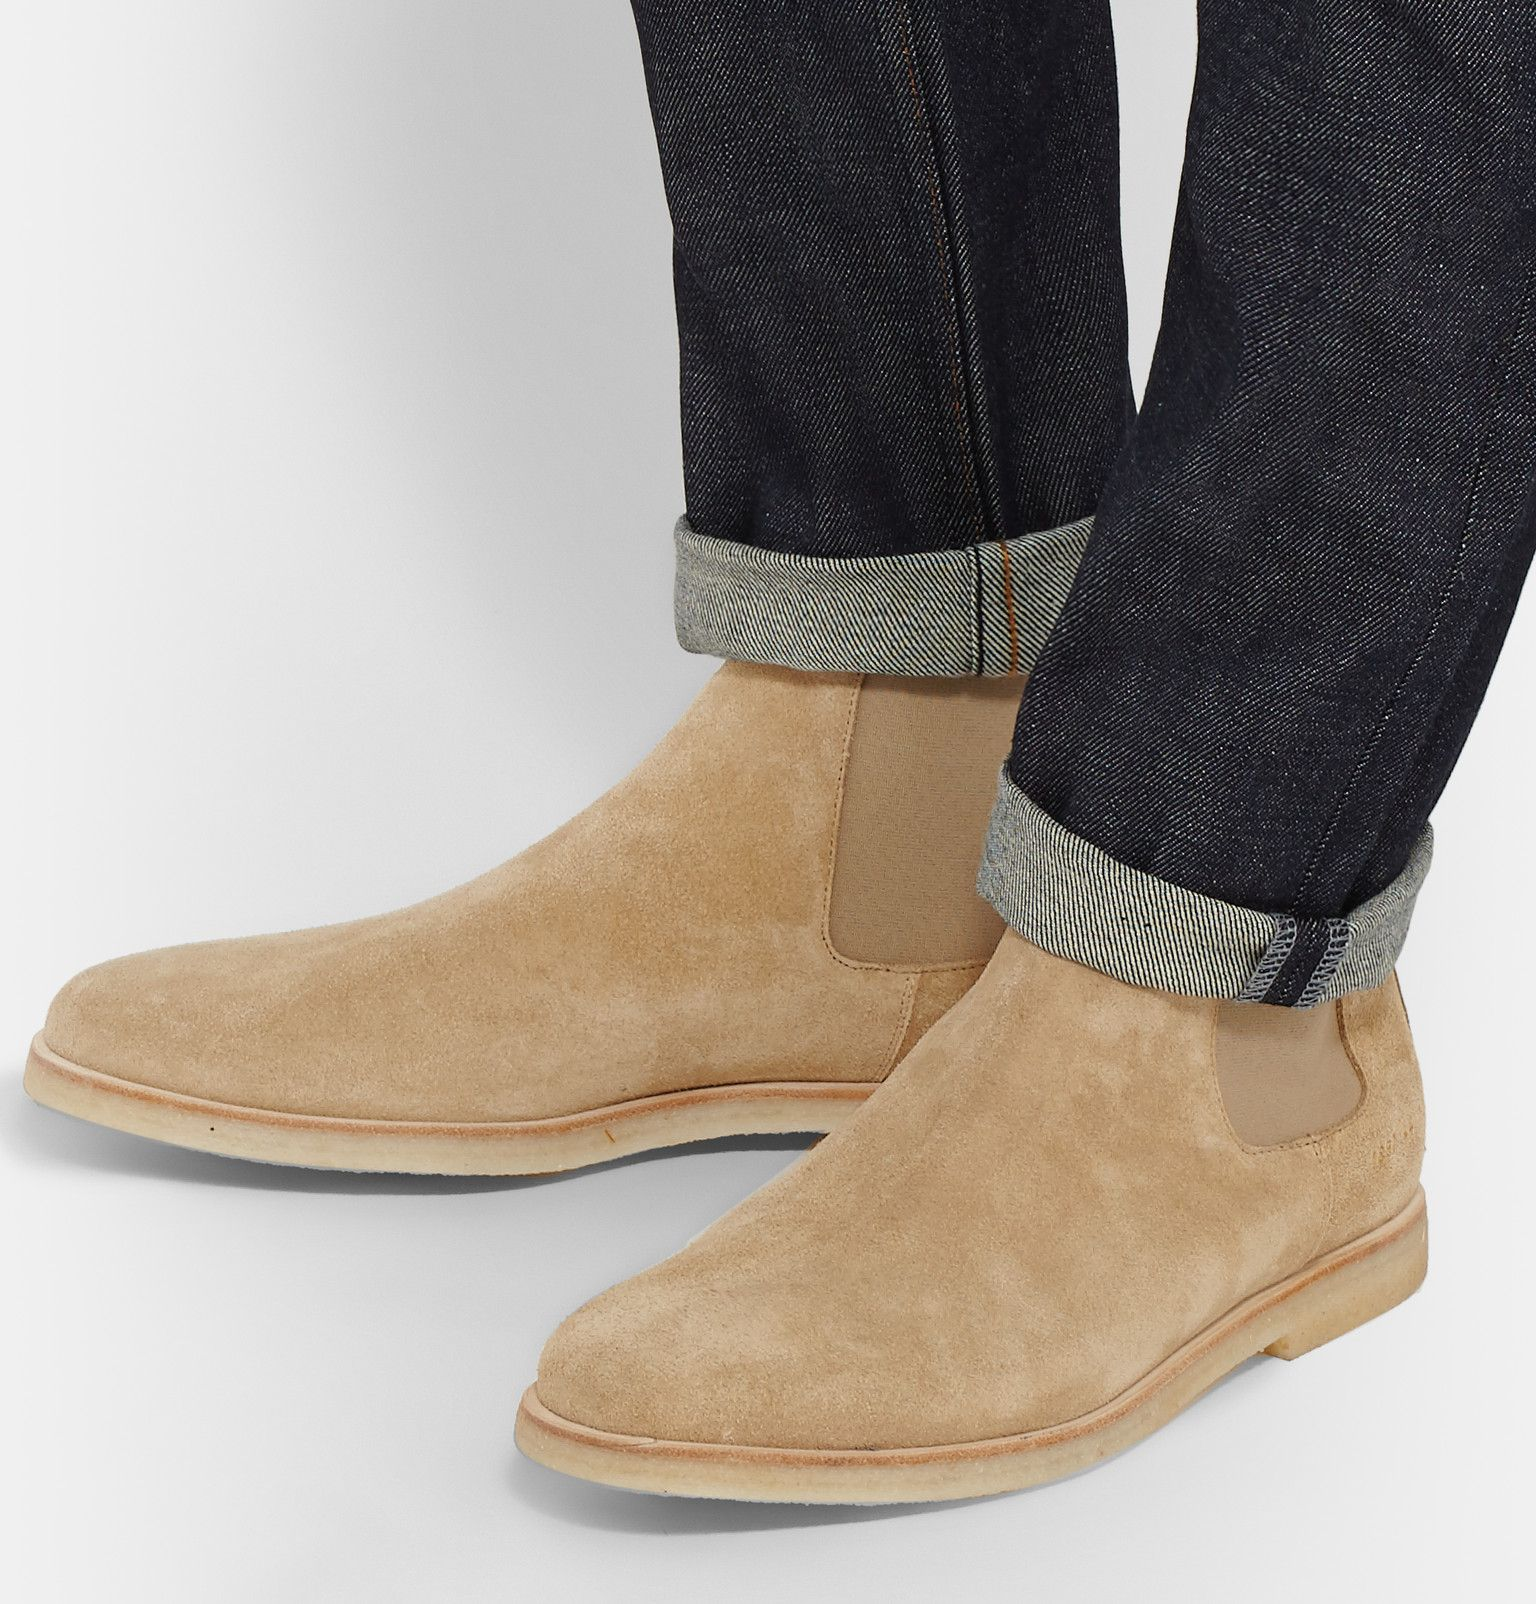 chelsea boots sand suede new style